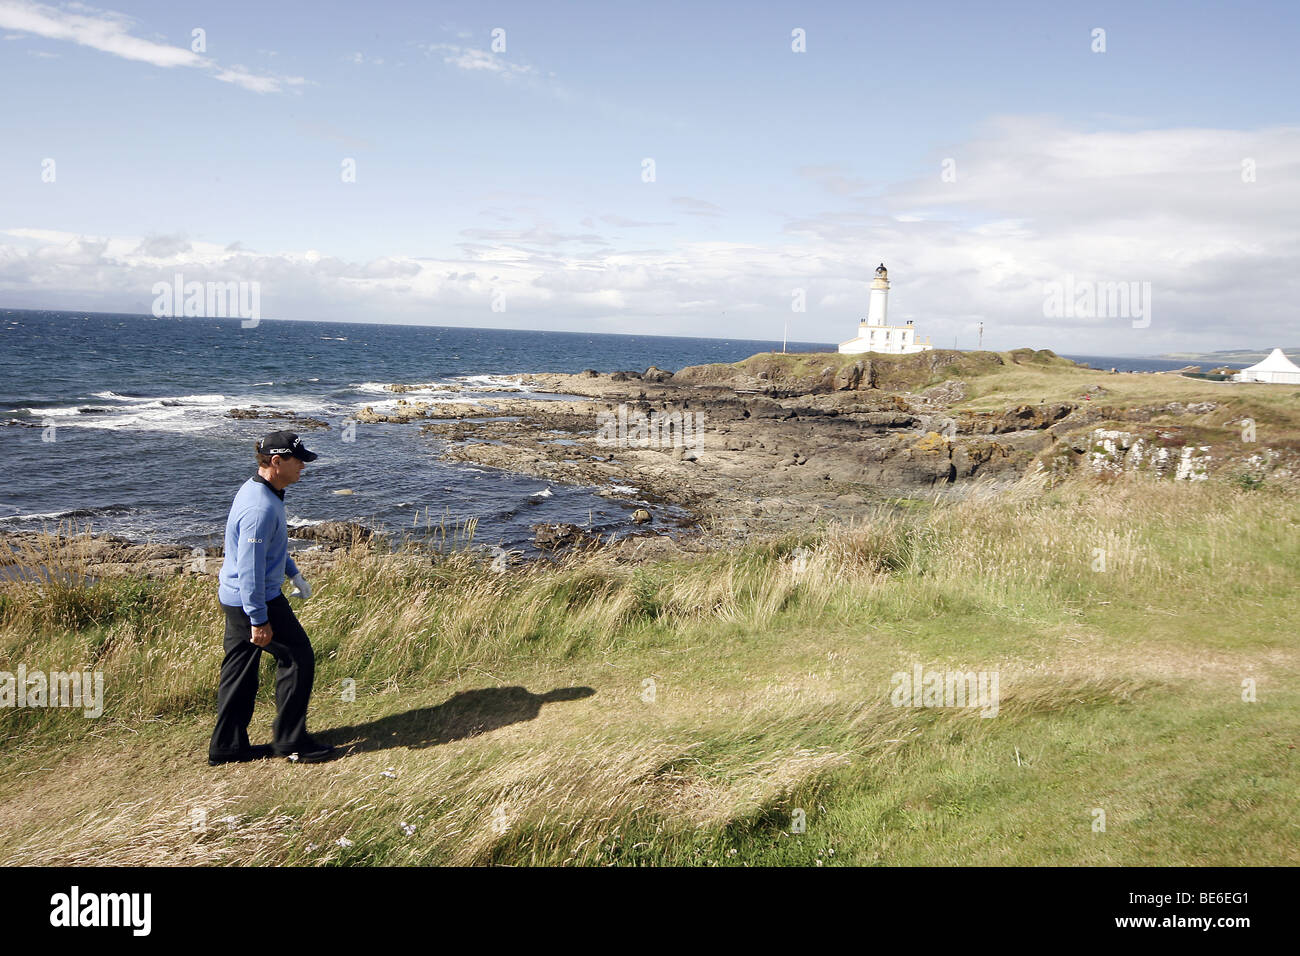 TOM WATSON ON THE 9TH THE OPEN TURNBERRY 2009 TURNBERRY AYRSHIRE SCOTLAND 19 July 2009 - Stock Image